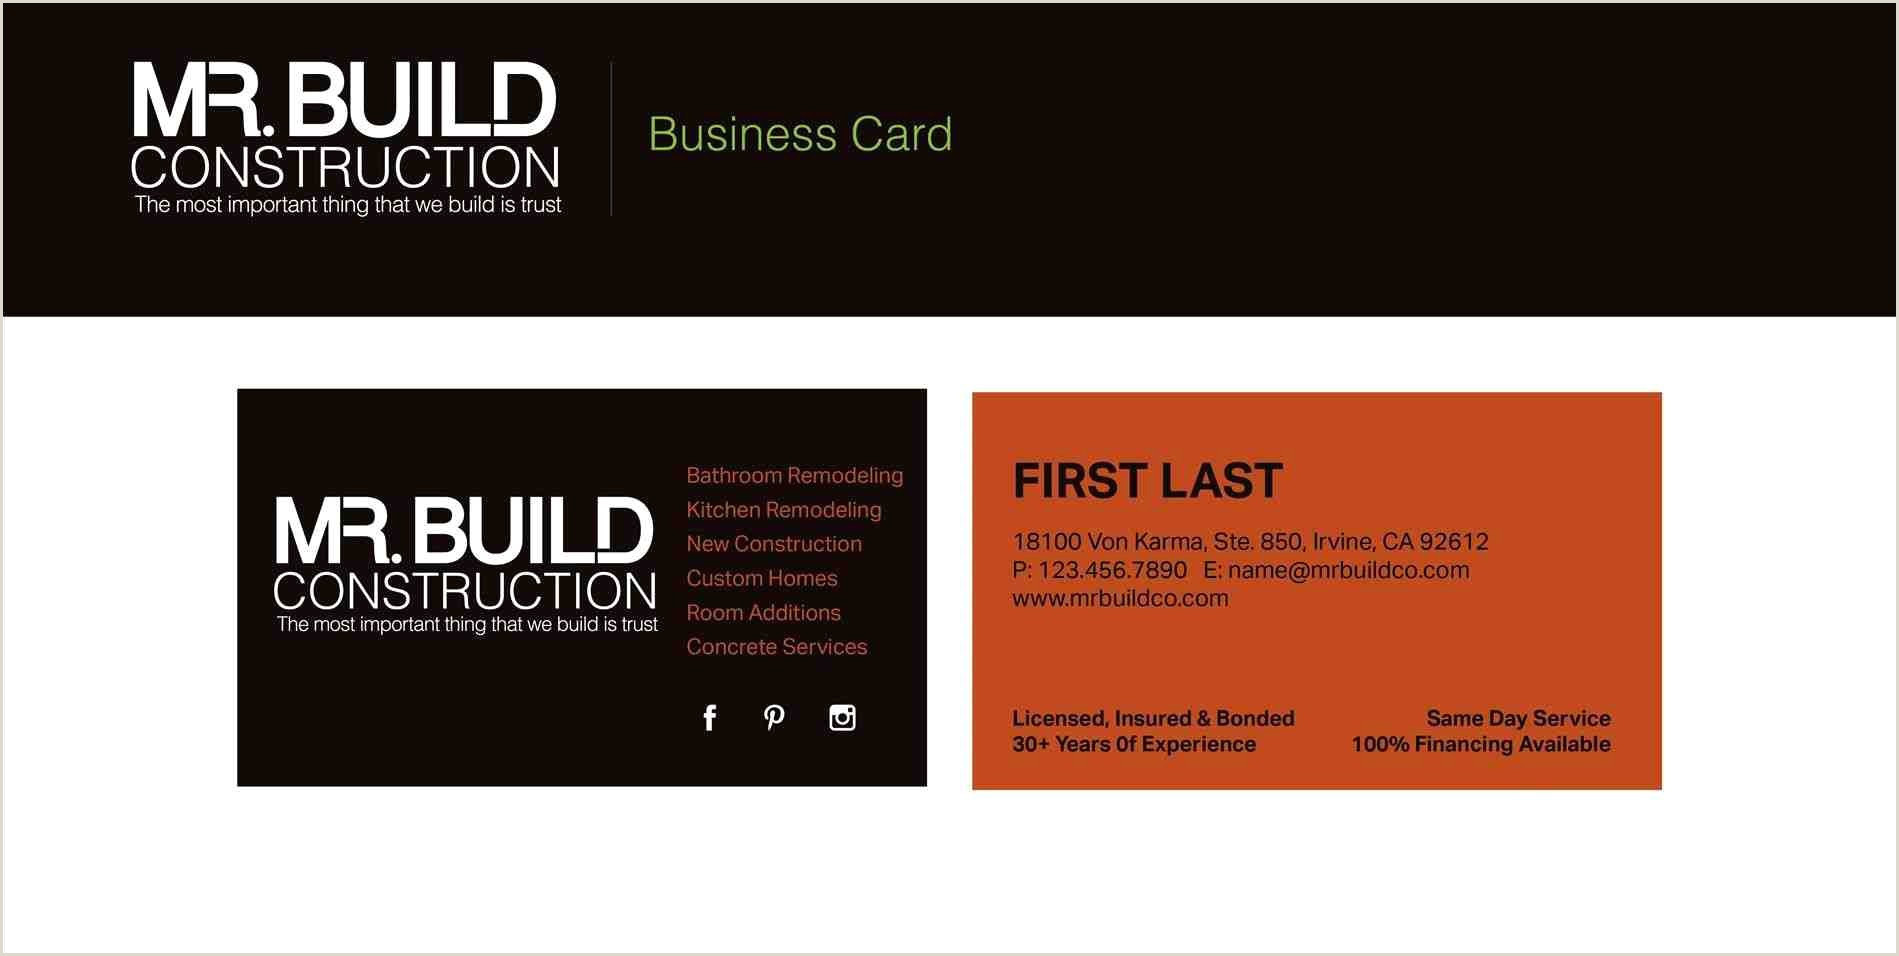 Best Business Cards From Existing Business Cards 14 Popular Hardwood Flooring Business Card Template